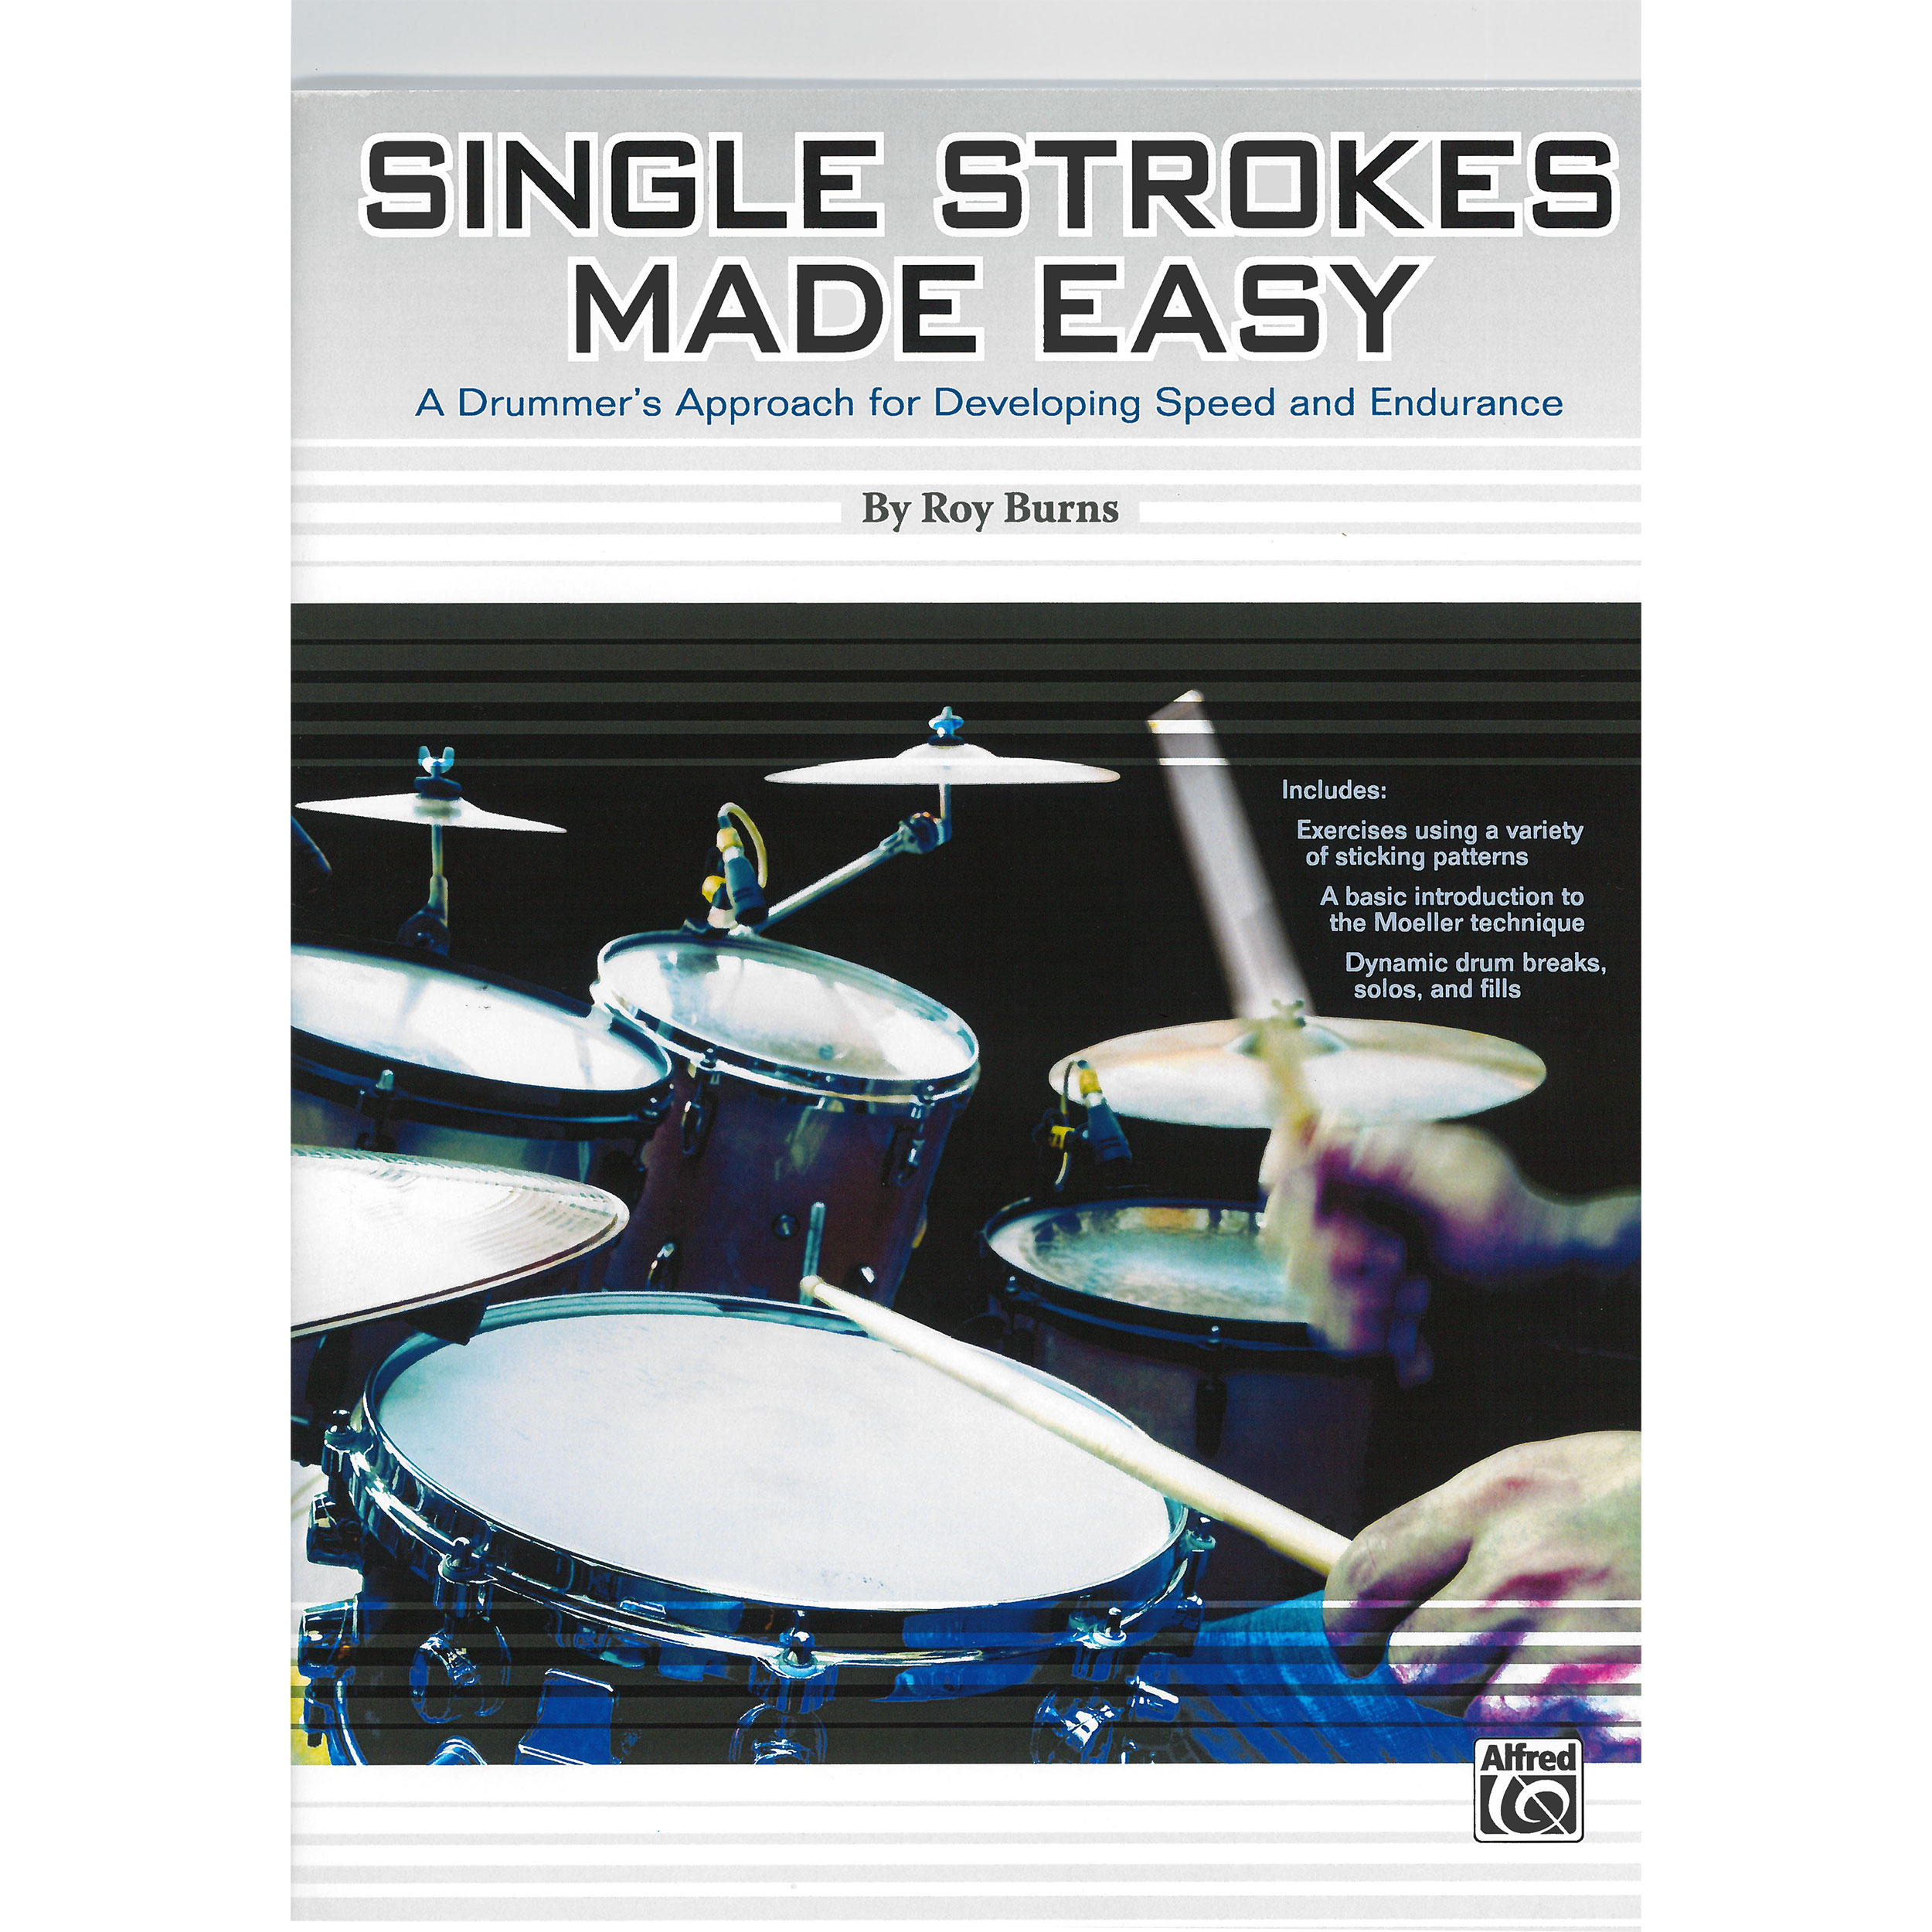 Single Strokes Made Easy by Roy Burns